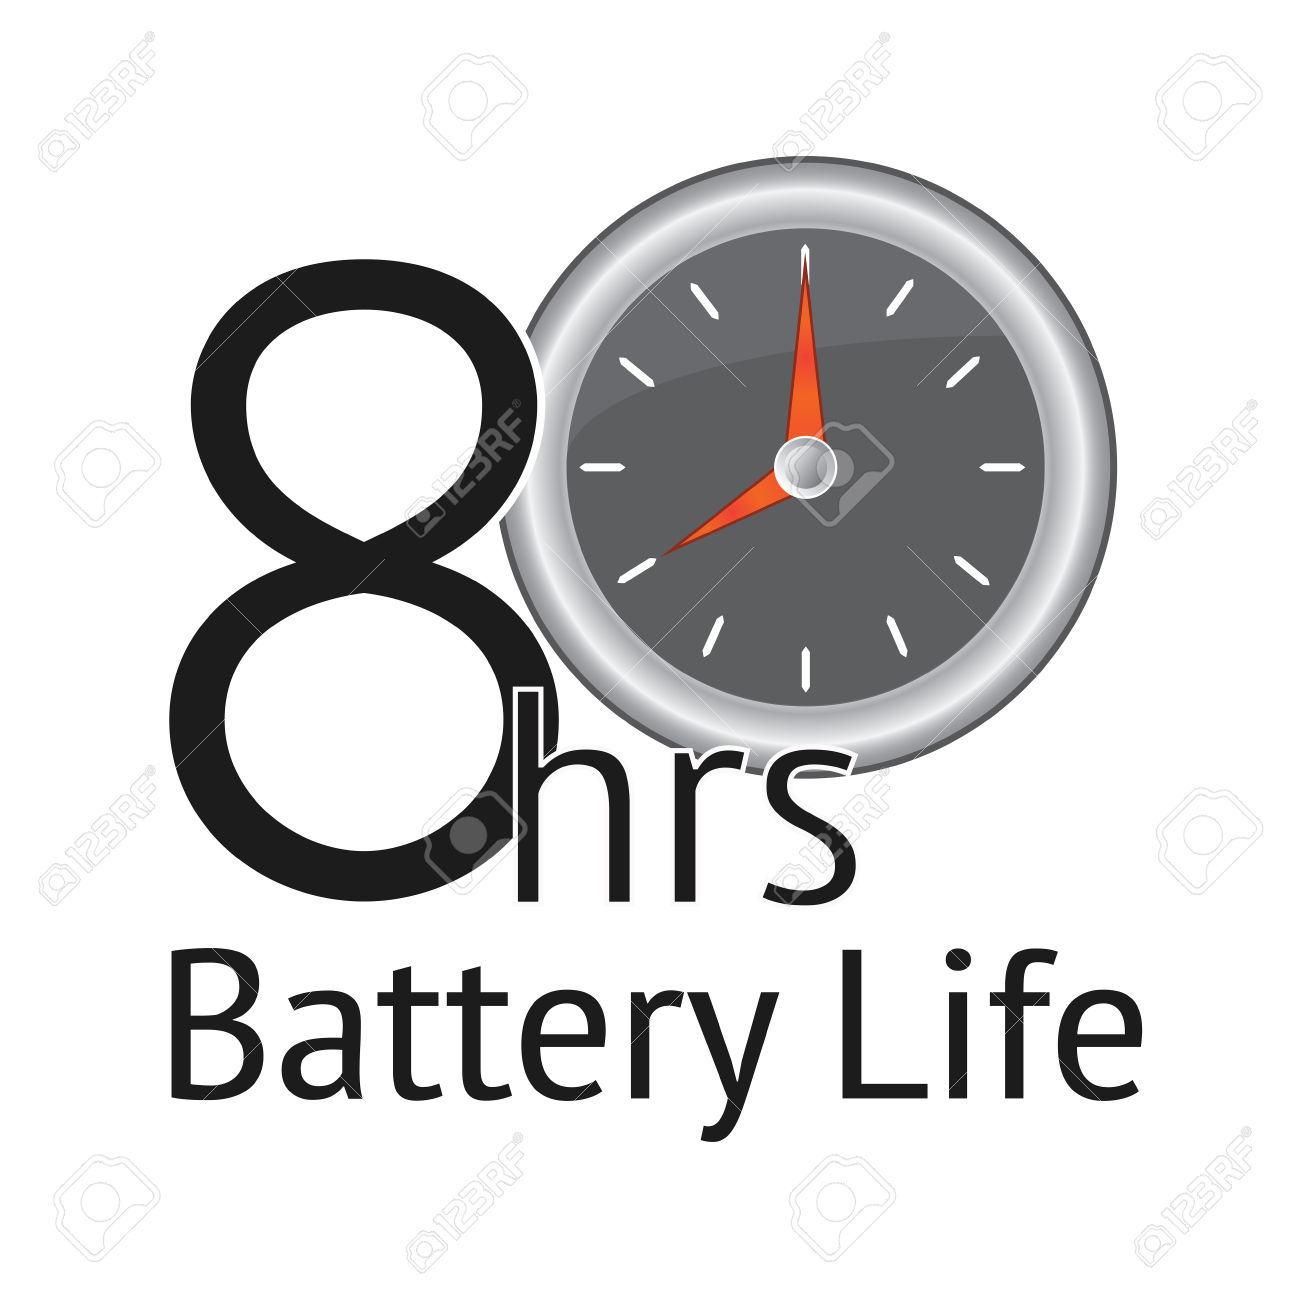 Live clipart battery life.